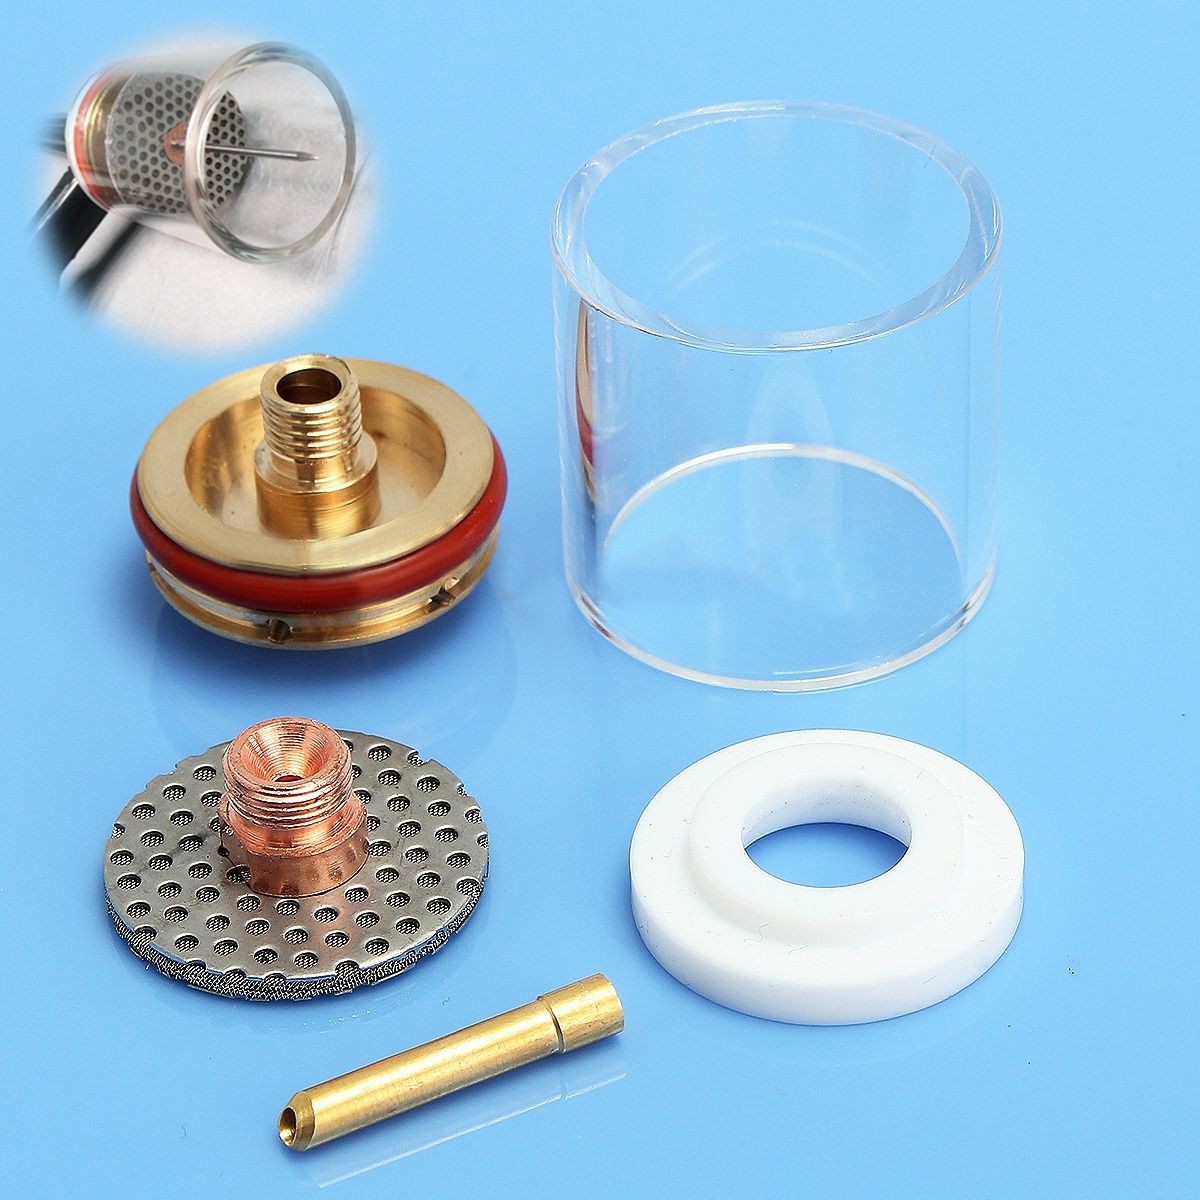 5pcs Welding Torch Nozzle Glass Cup Stubby Collet Gas Lens Insulator Kit Set For Tig WP-9/20/25 3/32 2.4 mm wp 17f sr 17f tig welding torch complete 20feet 6meter soldering iron flexible